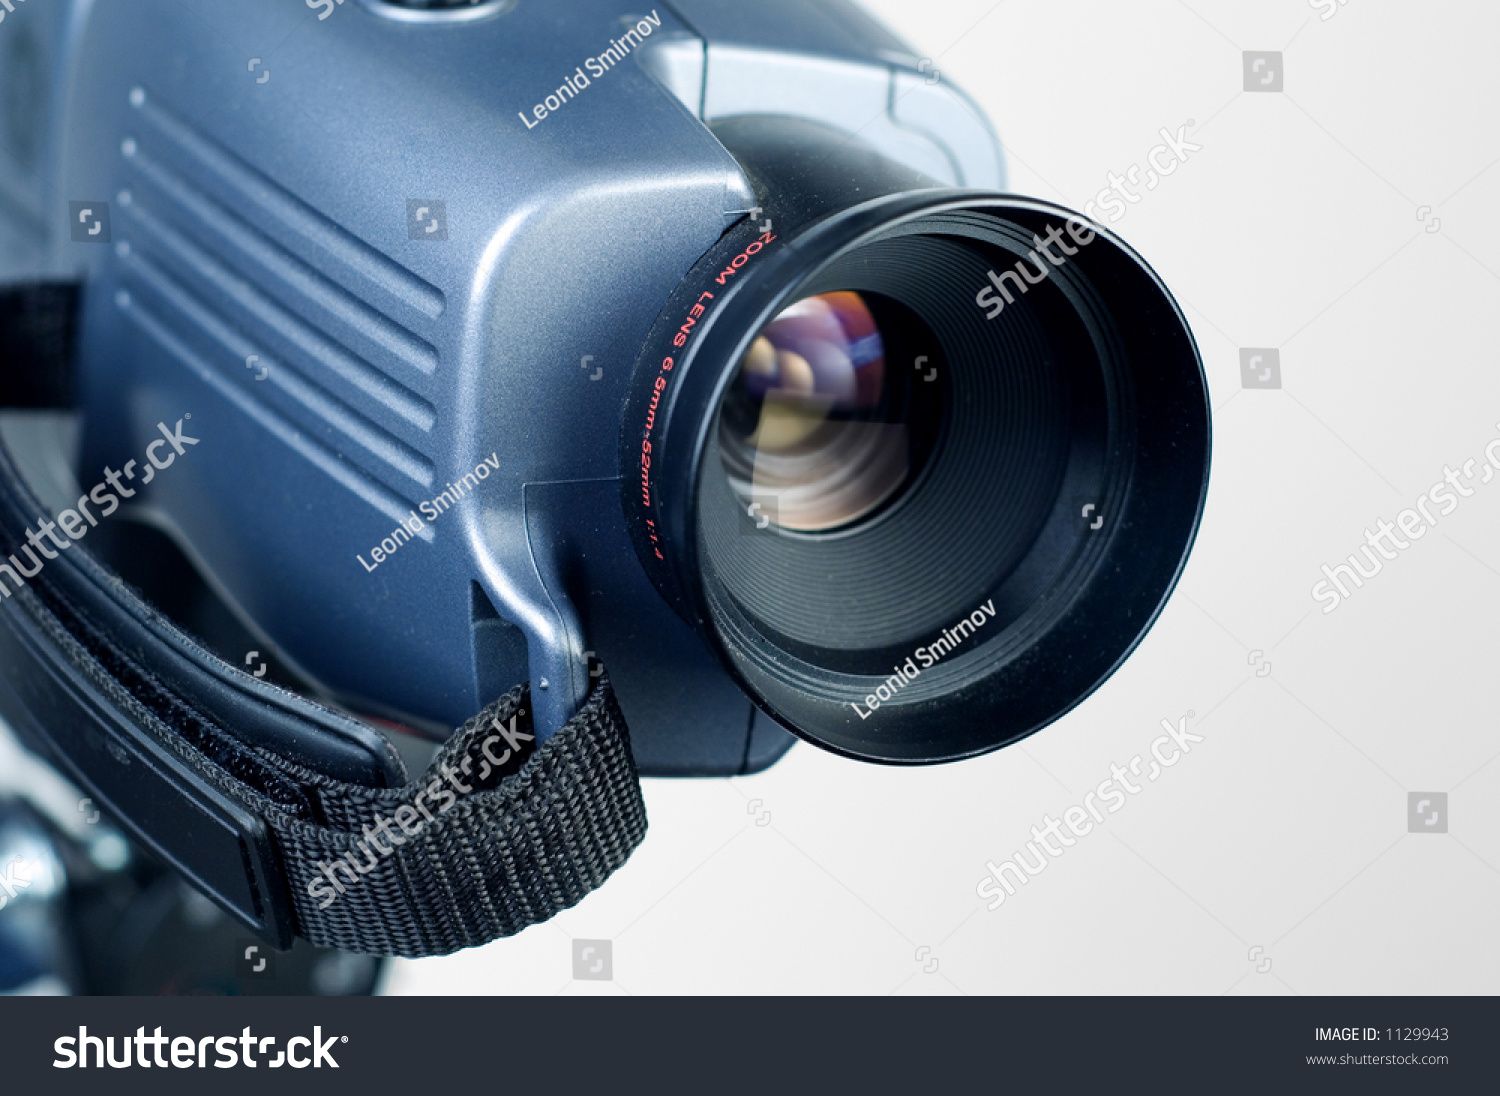 Video Camera Lens Pointing To The Right.1 Stock Photo ...